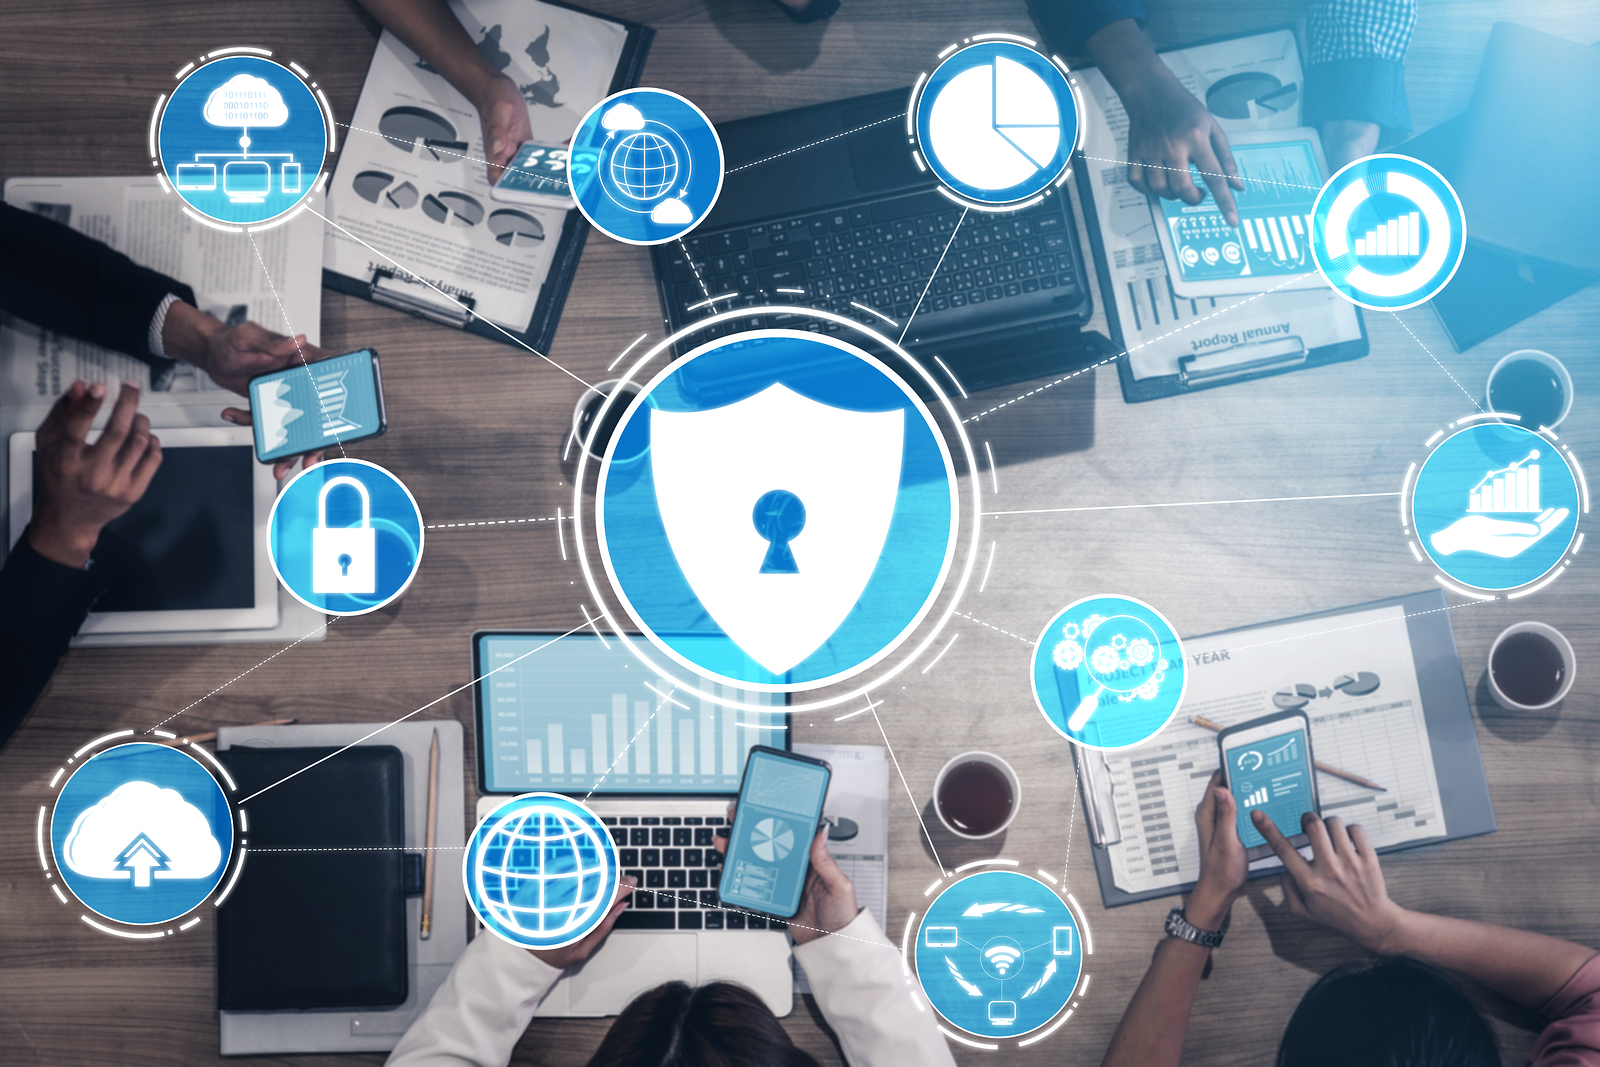 Tips to Secure Your Devices and Networks